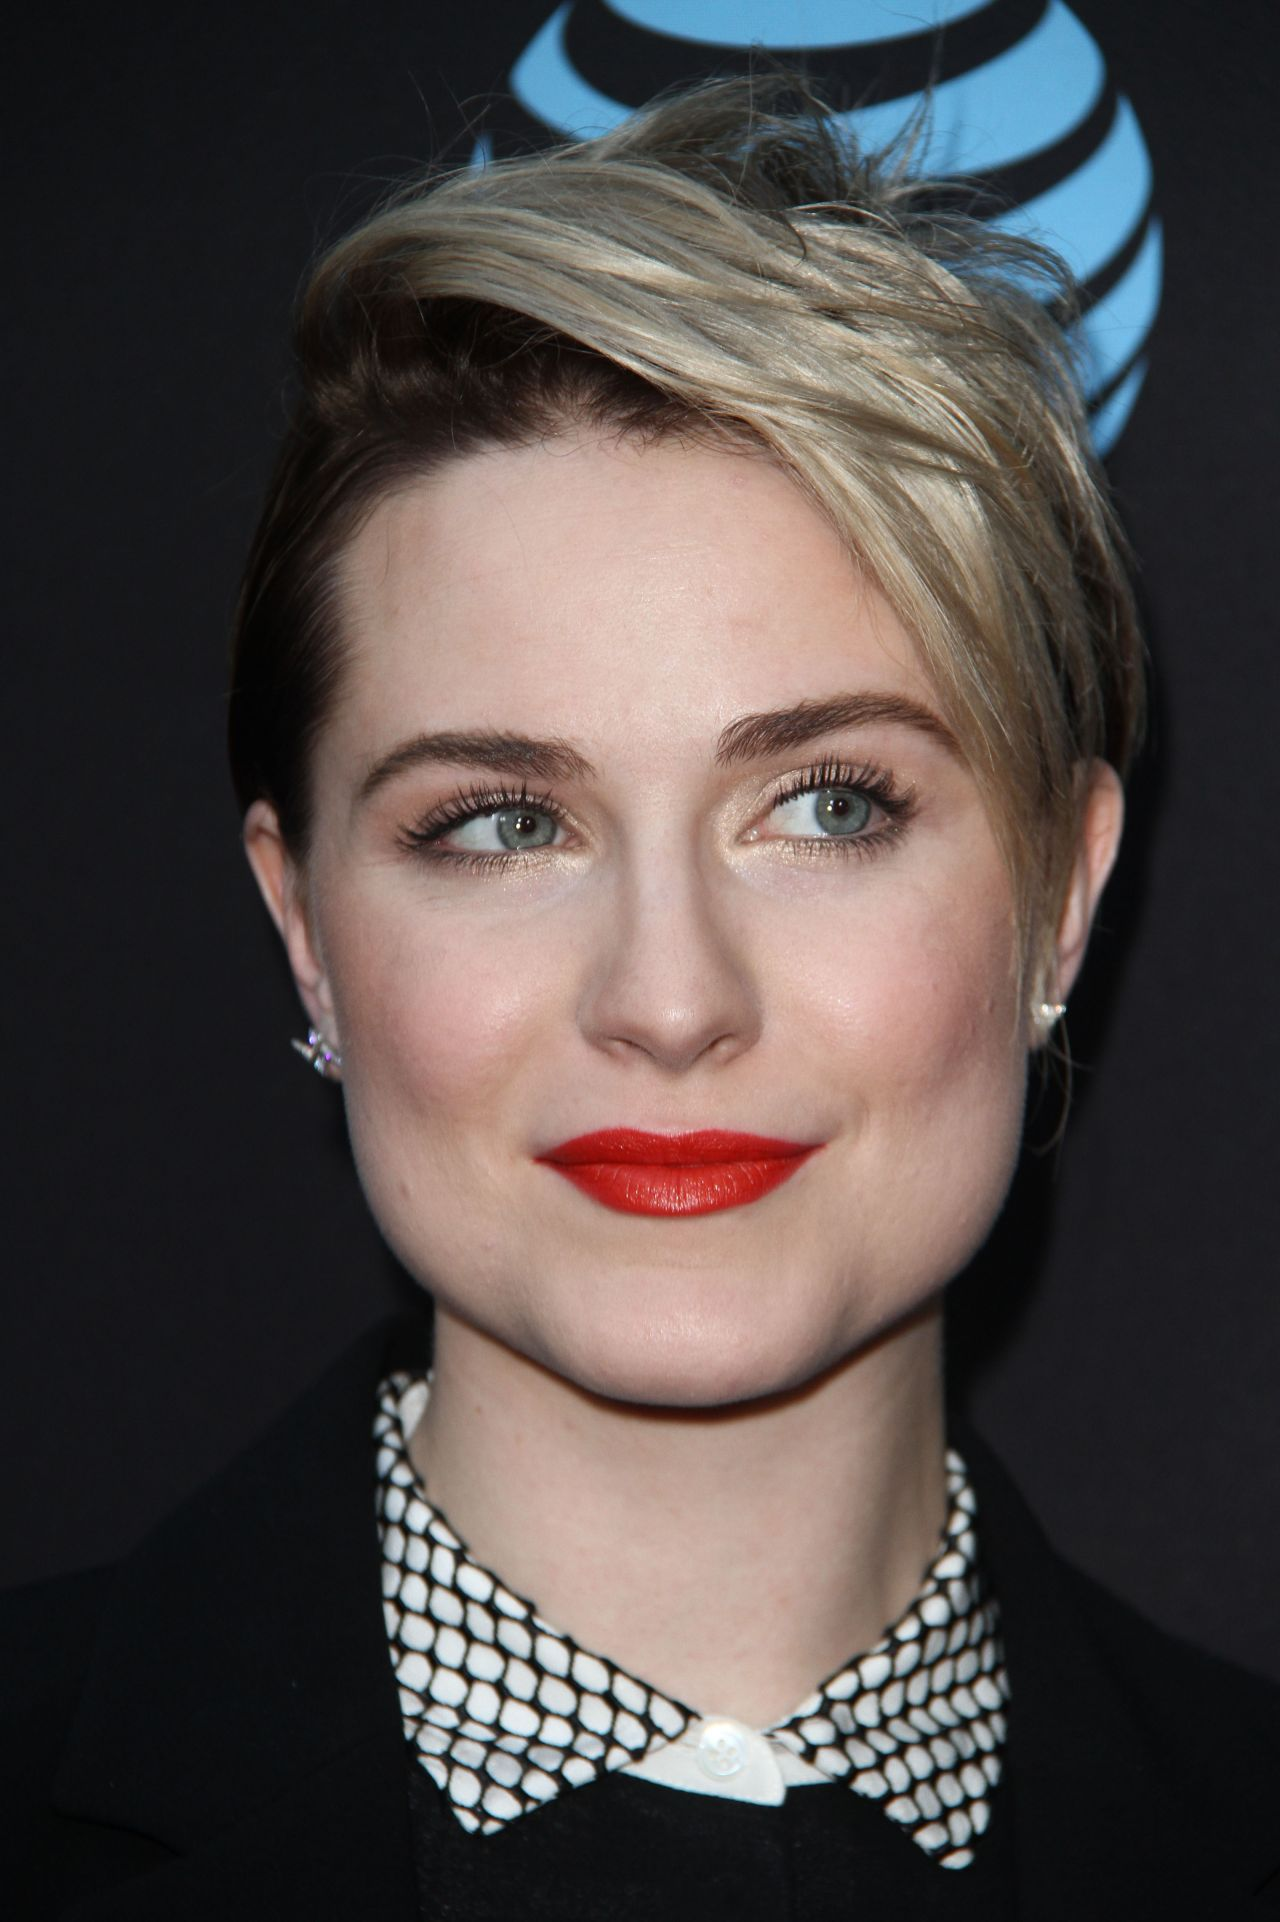 Evan Rachel Wood - A24's 'Into The Forest' Premiere at ... Evan Rachel Wood